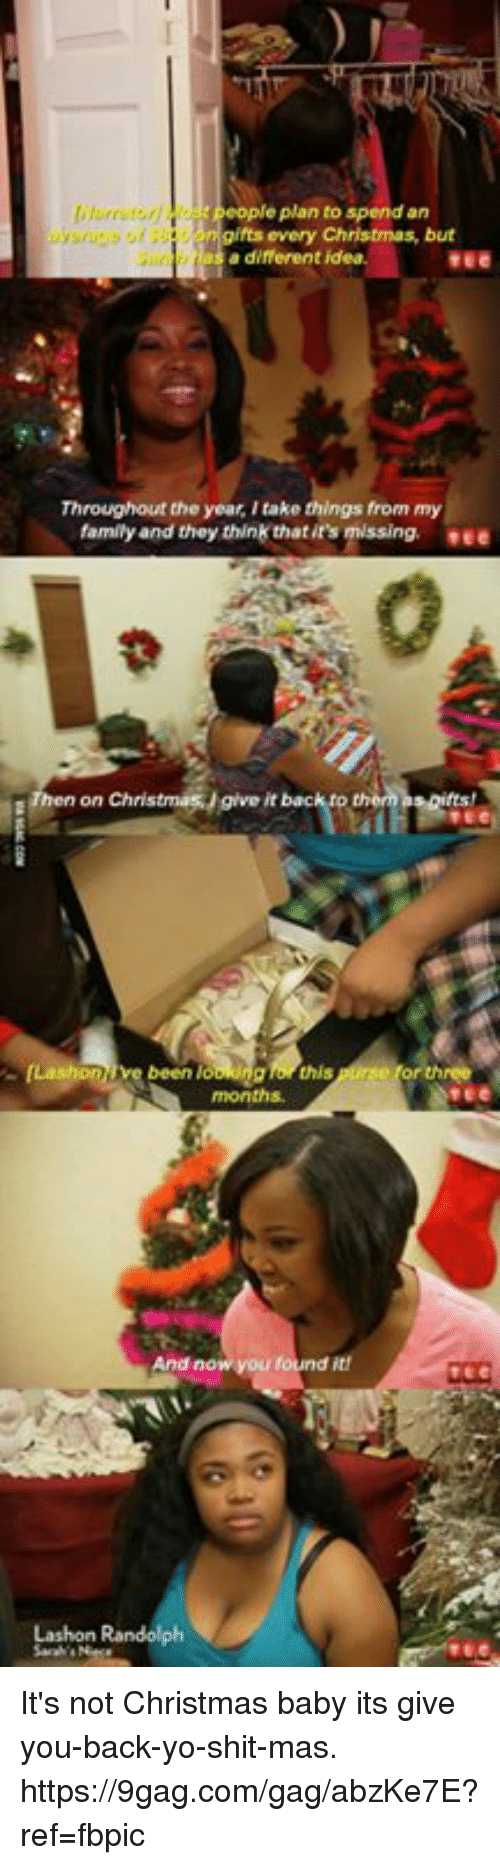 9gag, Christmas, and Dank: itrnutor)  plan to spend an  every Christmas, but  a different idea  ree  Throughout the year, I take things from my  family and they think that ir's missing. ee  give it bac  Lashon ive been looking Tor this  And now you  it!  Lashon It's not Christmas baby its give you-back-yo-shit-mas. https://9gag.com/gag/abzKe7E?ref=fbpic